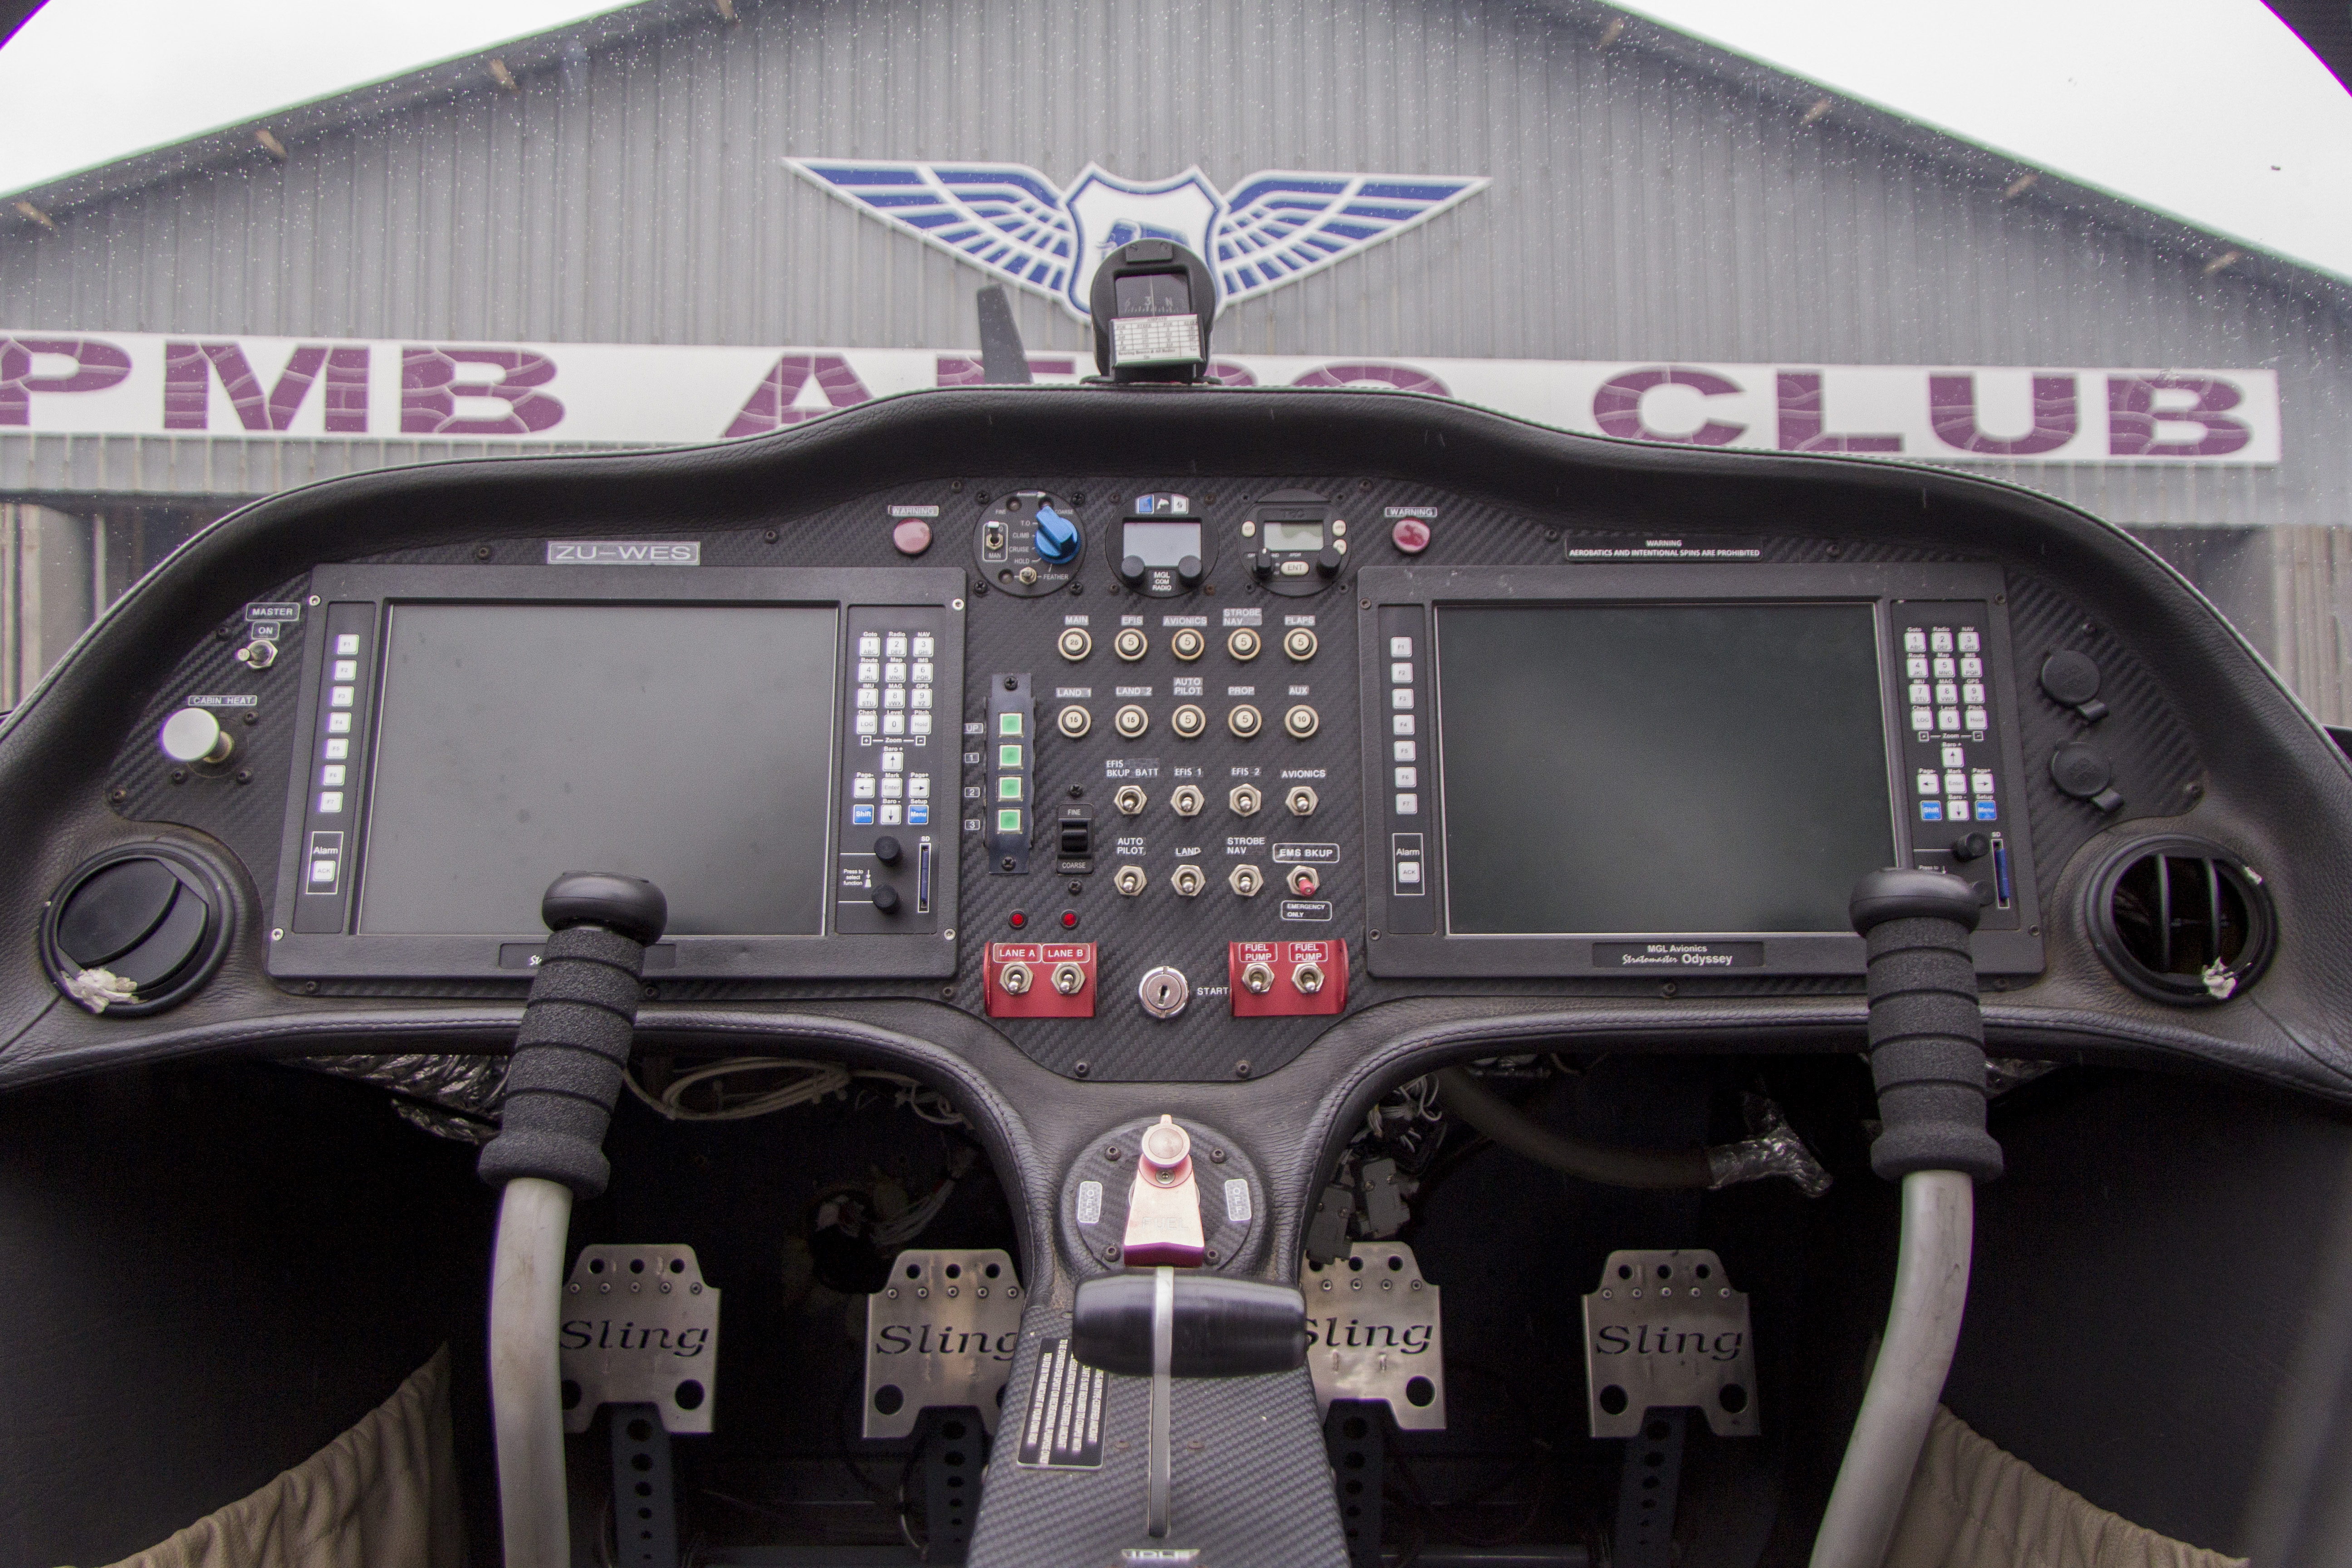 ZU-WES control panel